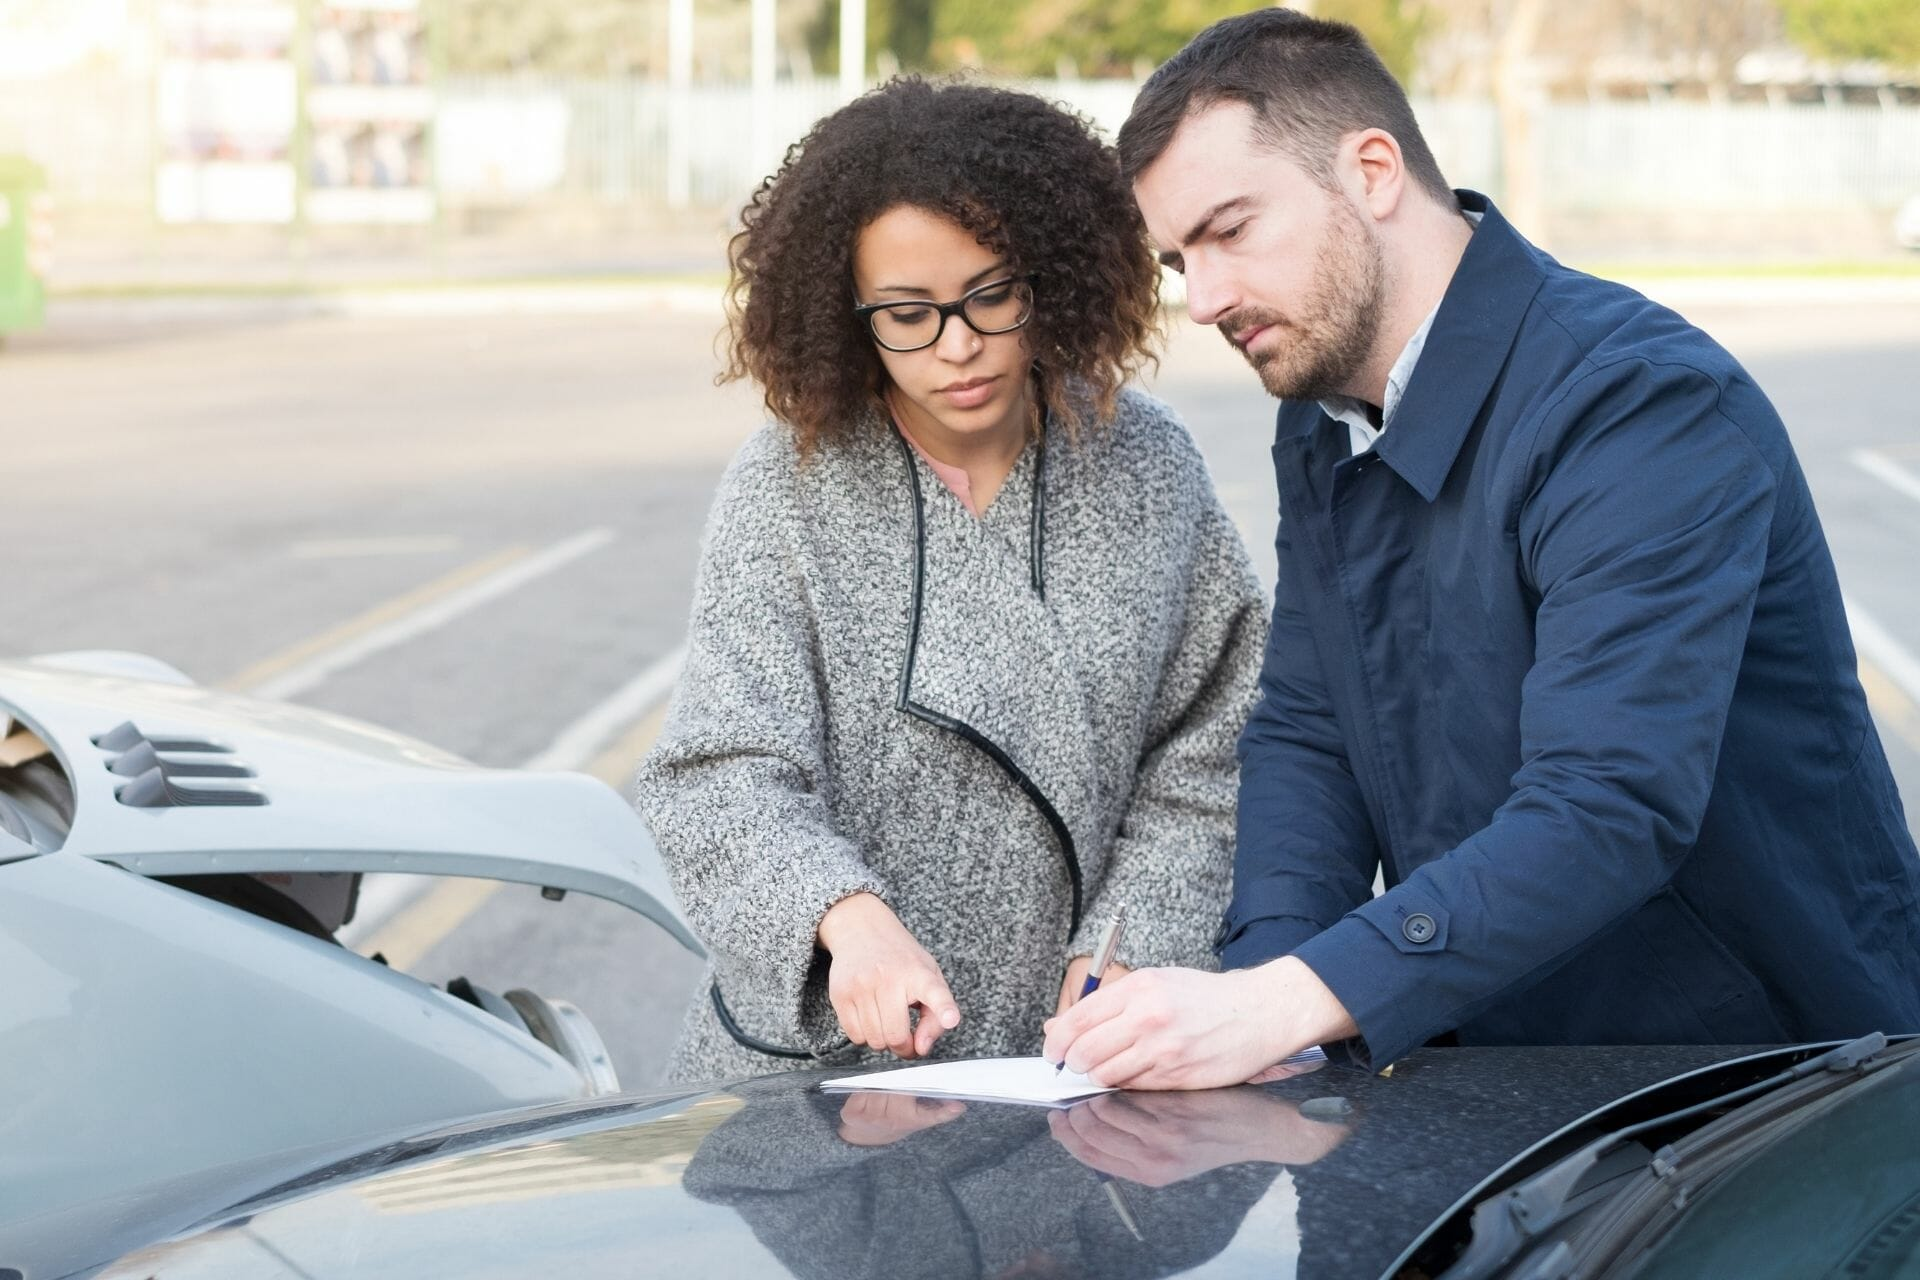 man and woman writing on paper outside on a car